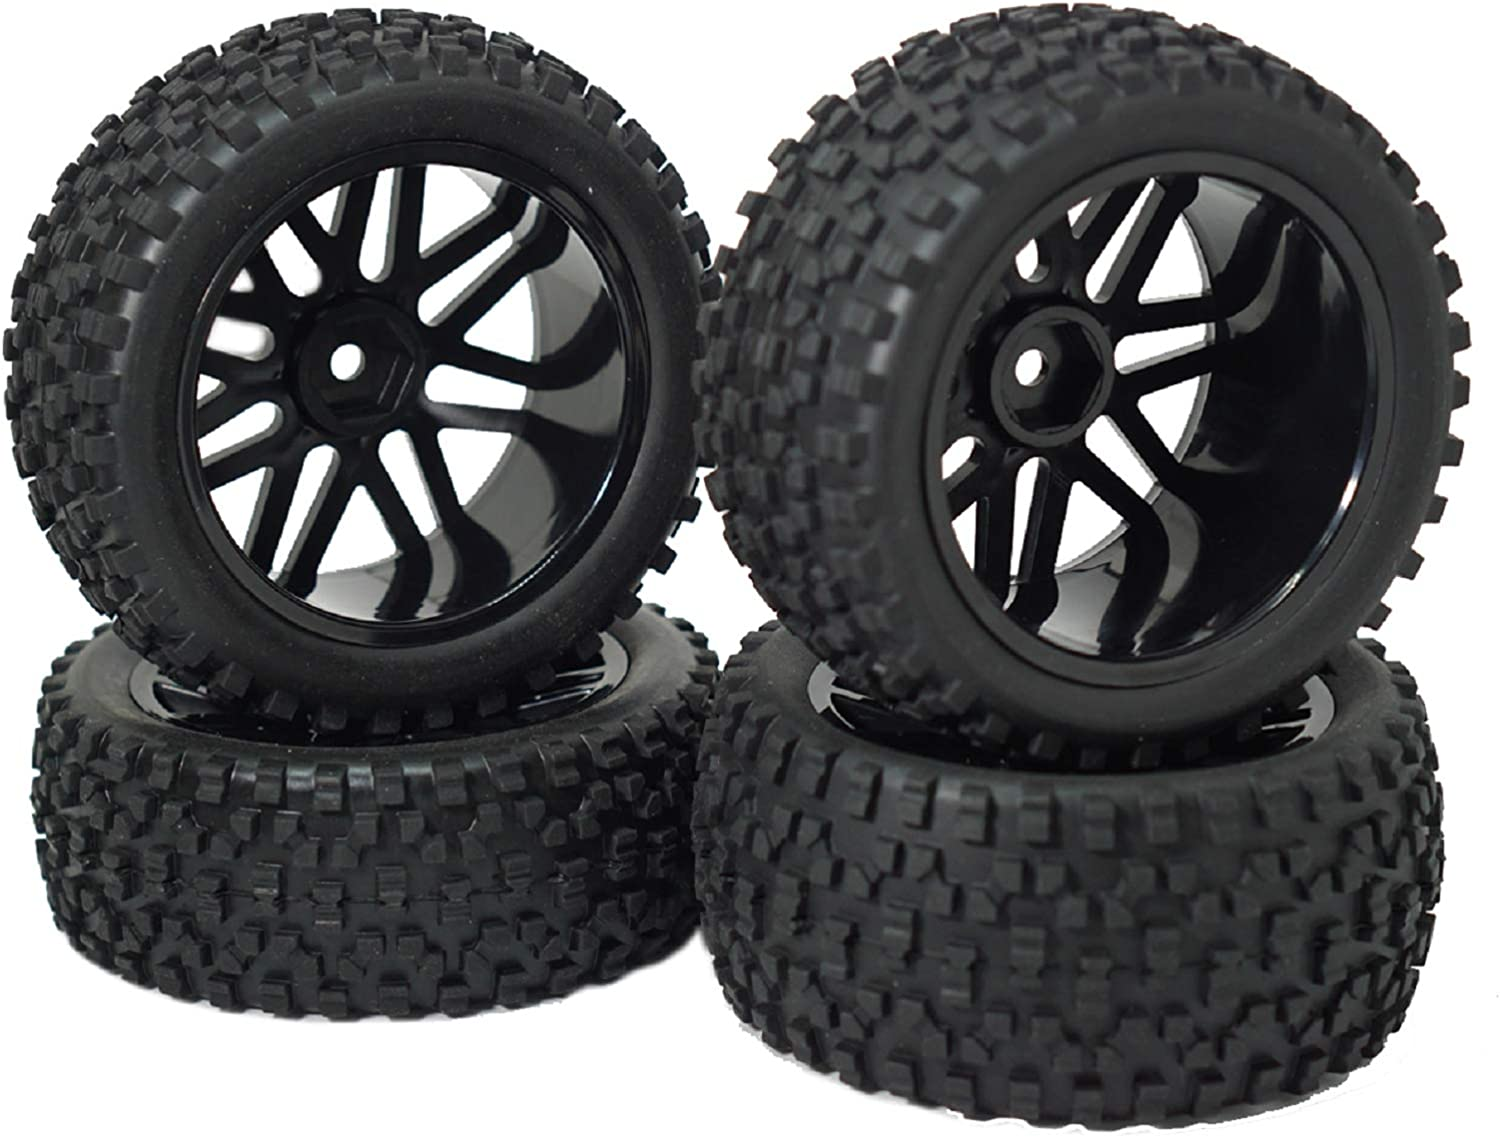 Vgoohobby 12mm Hex Wheel Rims Mesh Tires safety with Rubber Spong half Shape